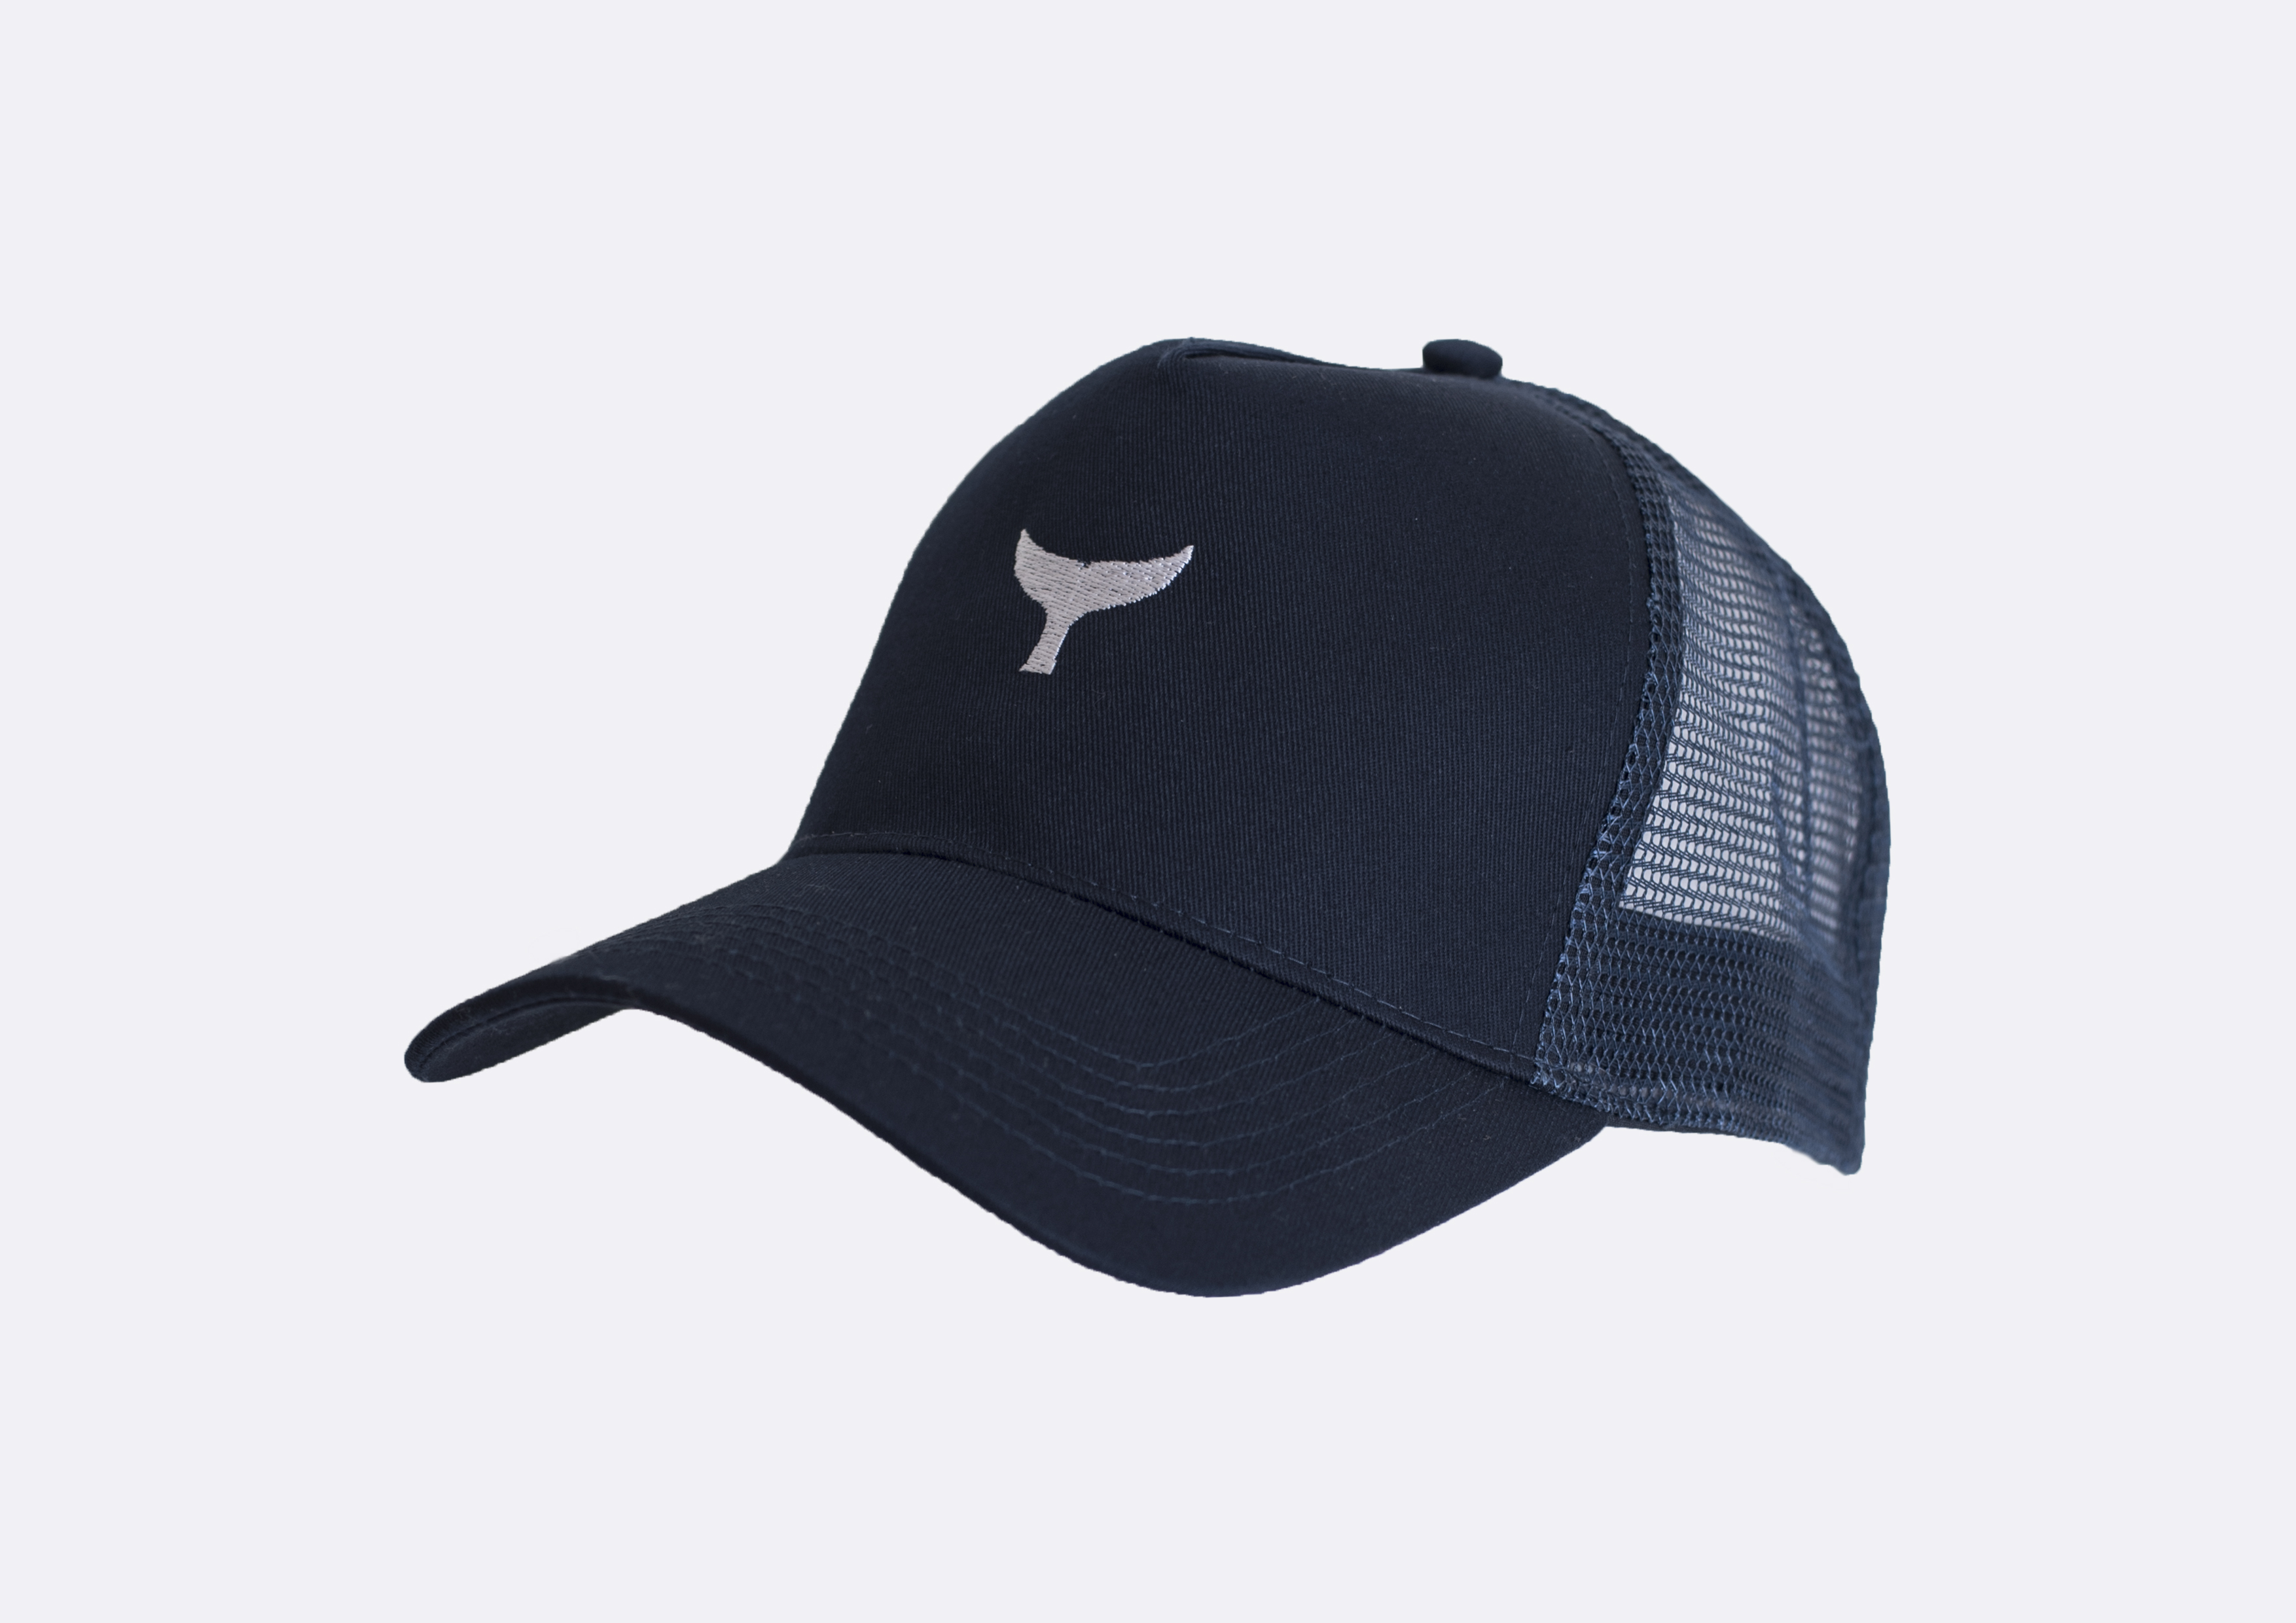 whale-of-a-time-clothing-trucker-cap-in-navy